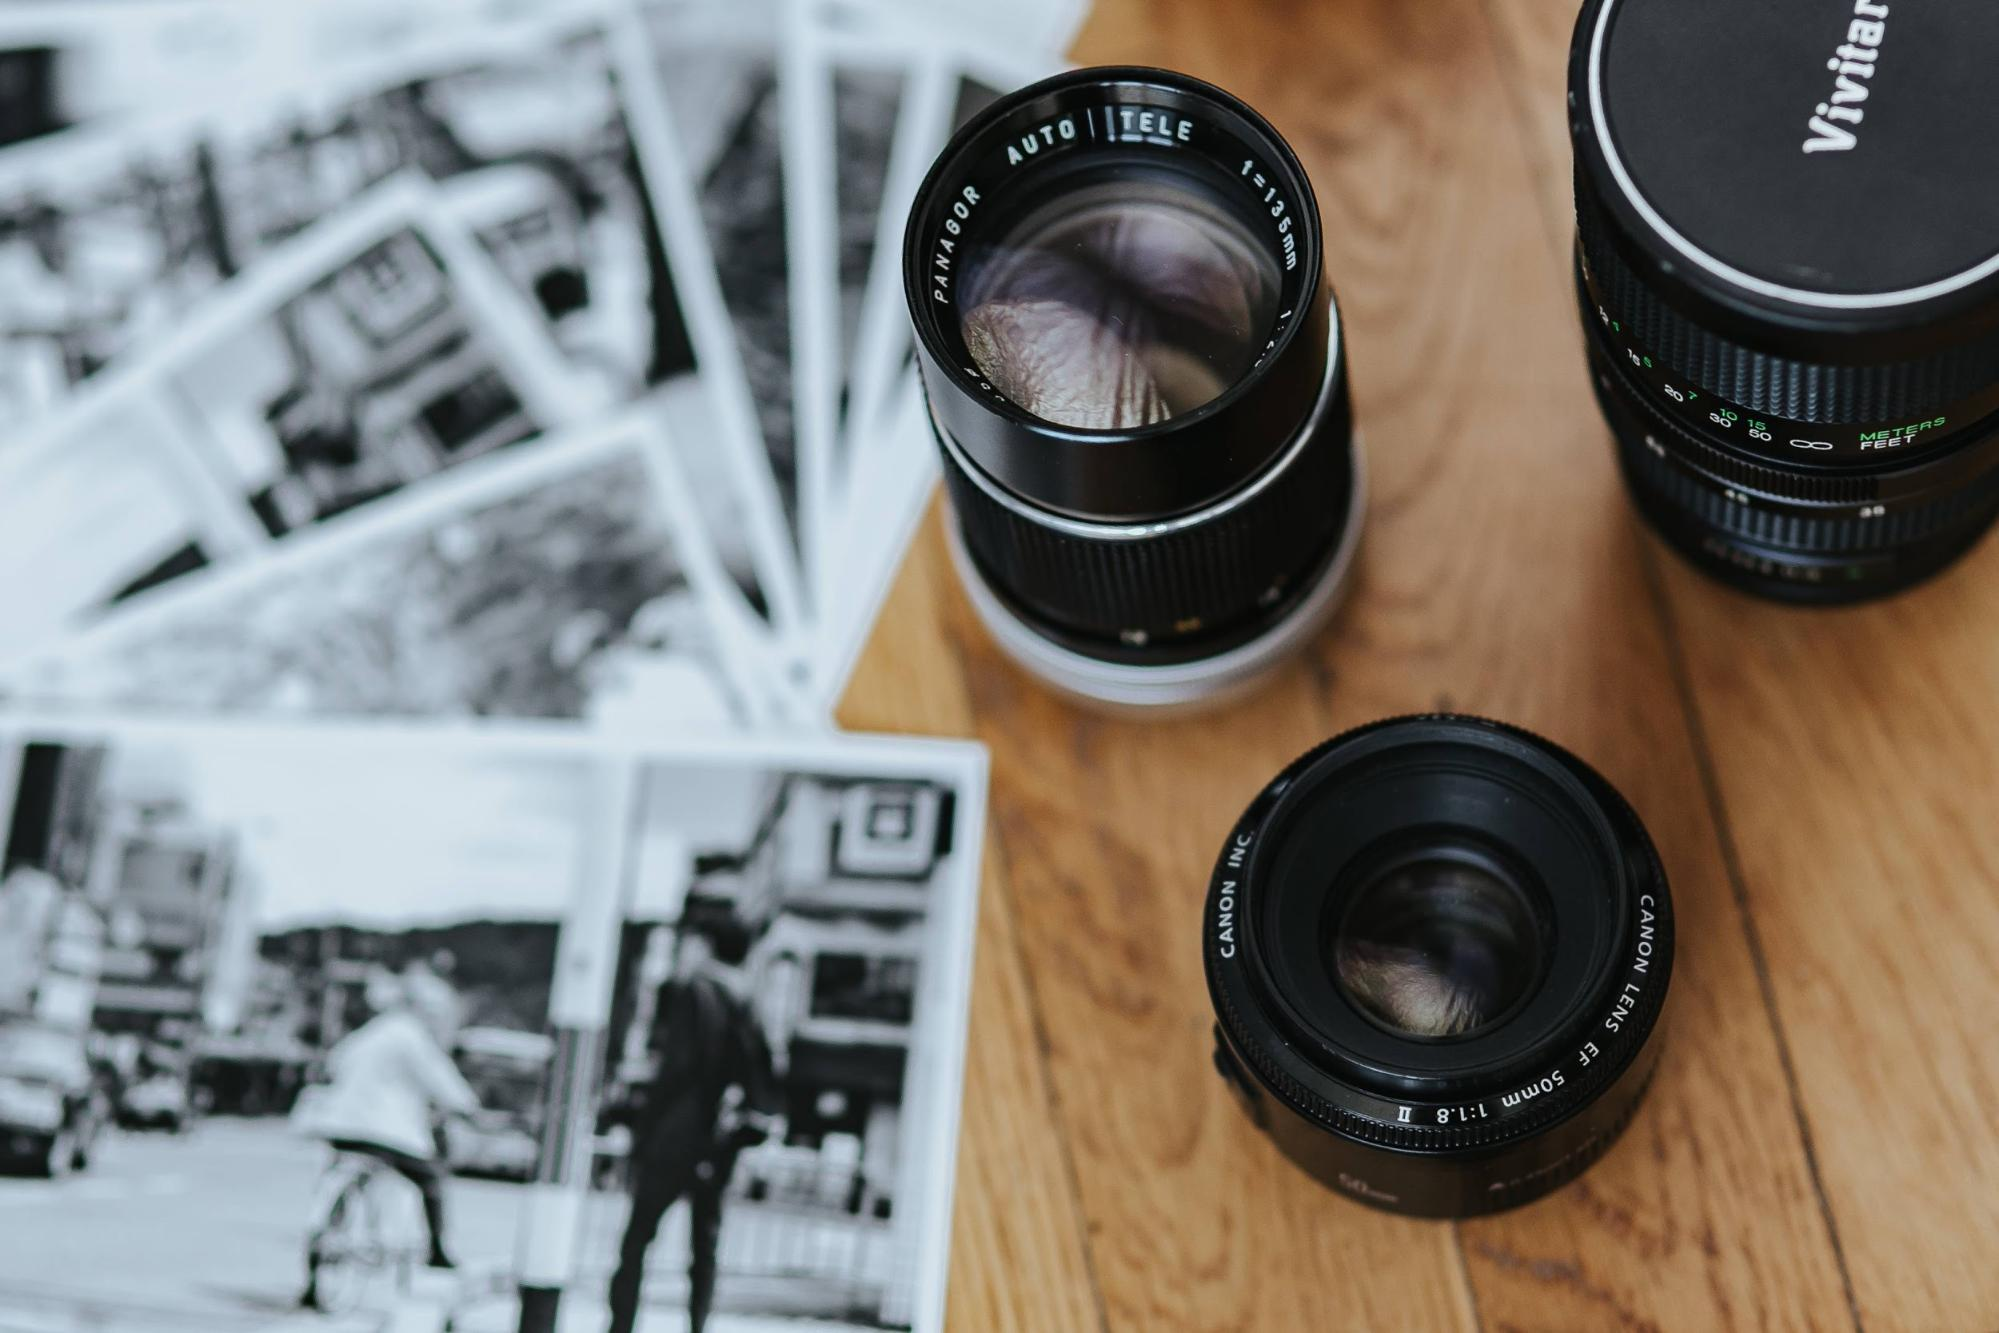 Video shooting lenses and photos on a wooden table